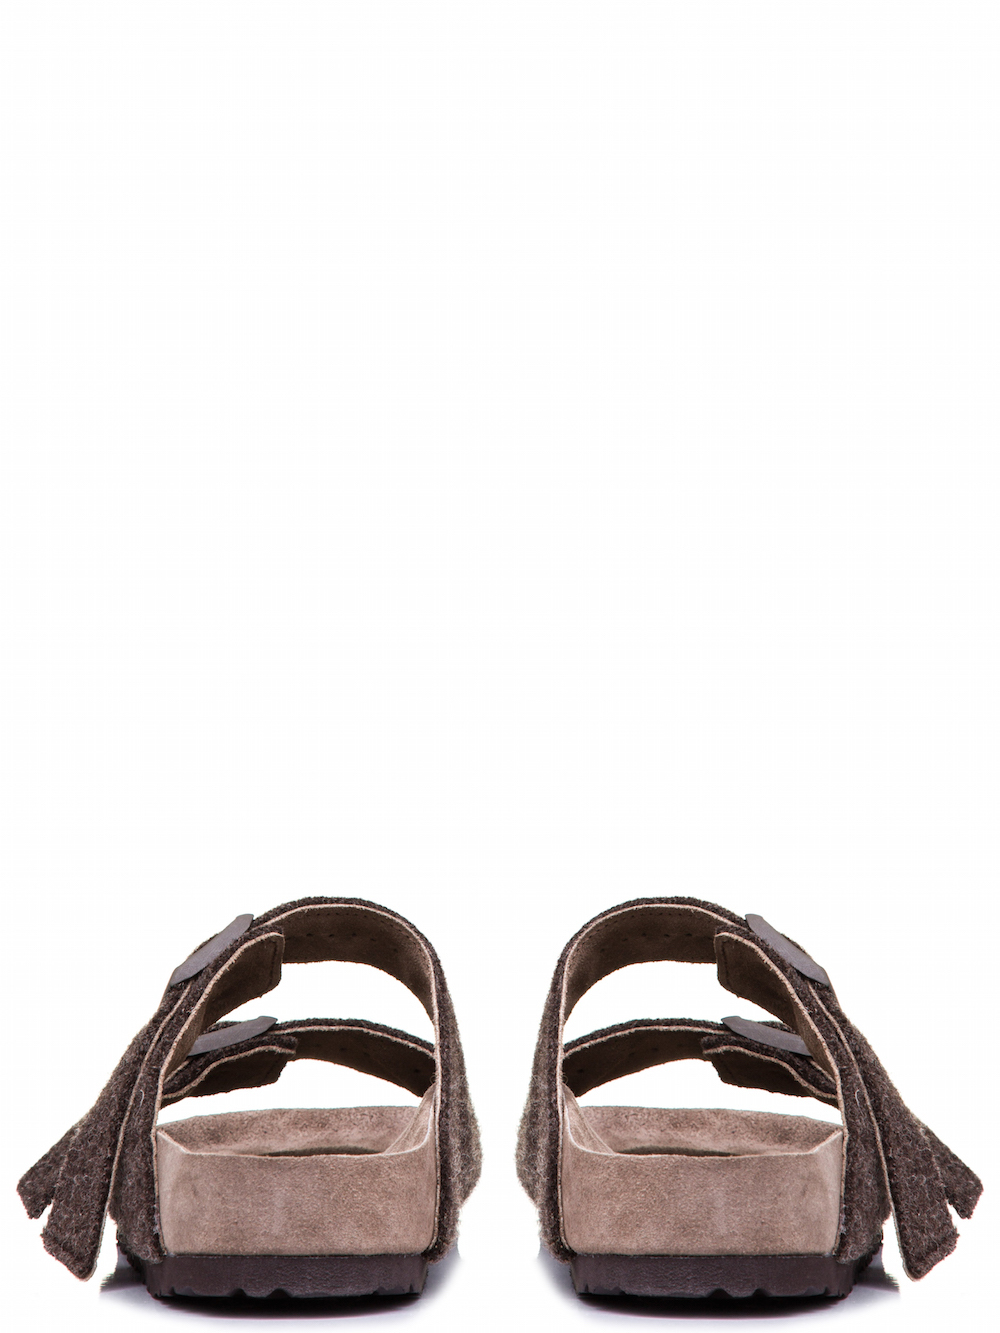 RICK OWENS X BIRKENSTOCK ARIZONA SANDAL IN BROWN